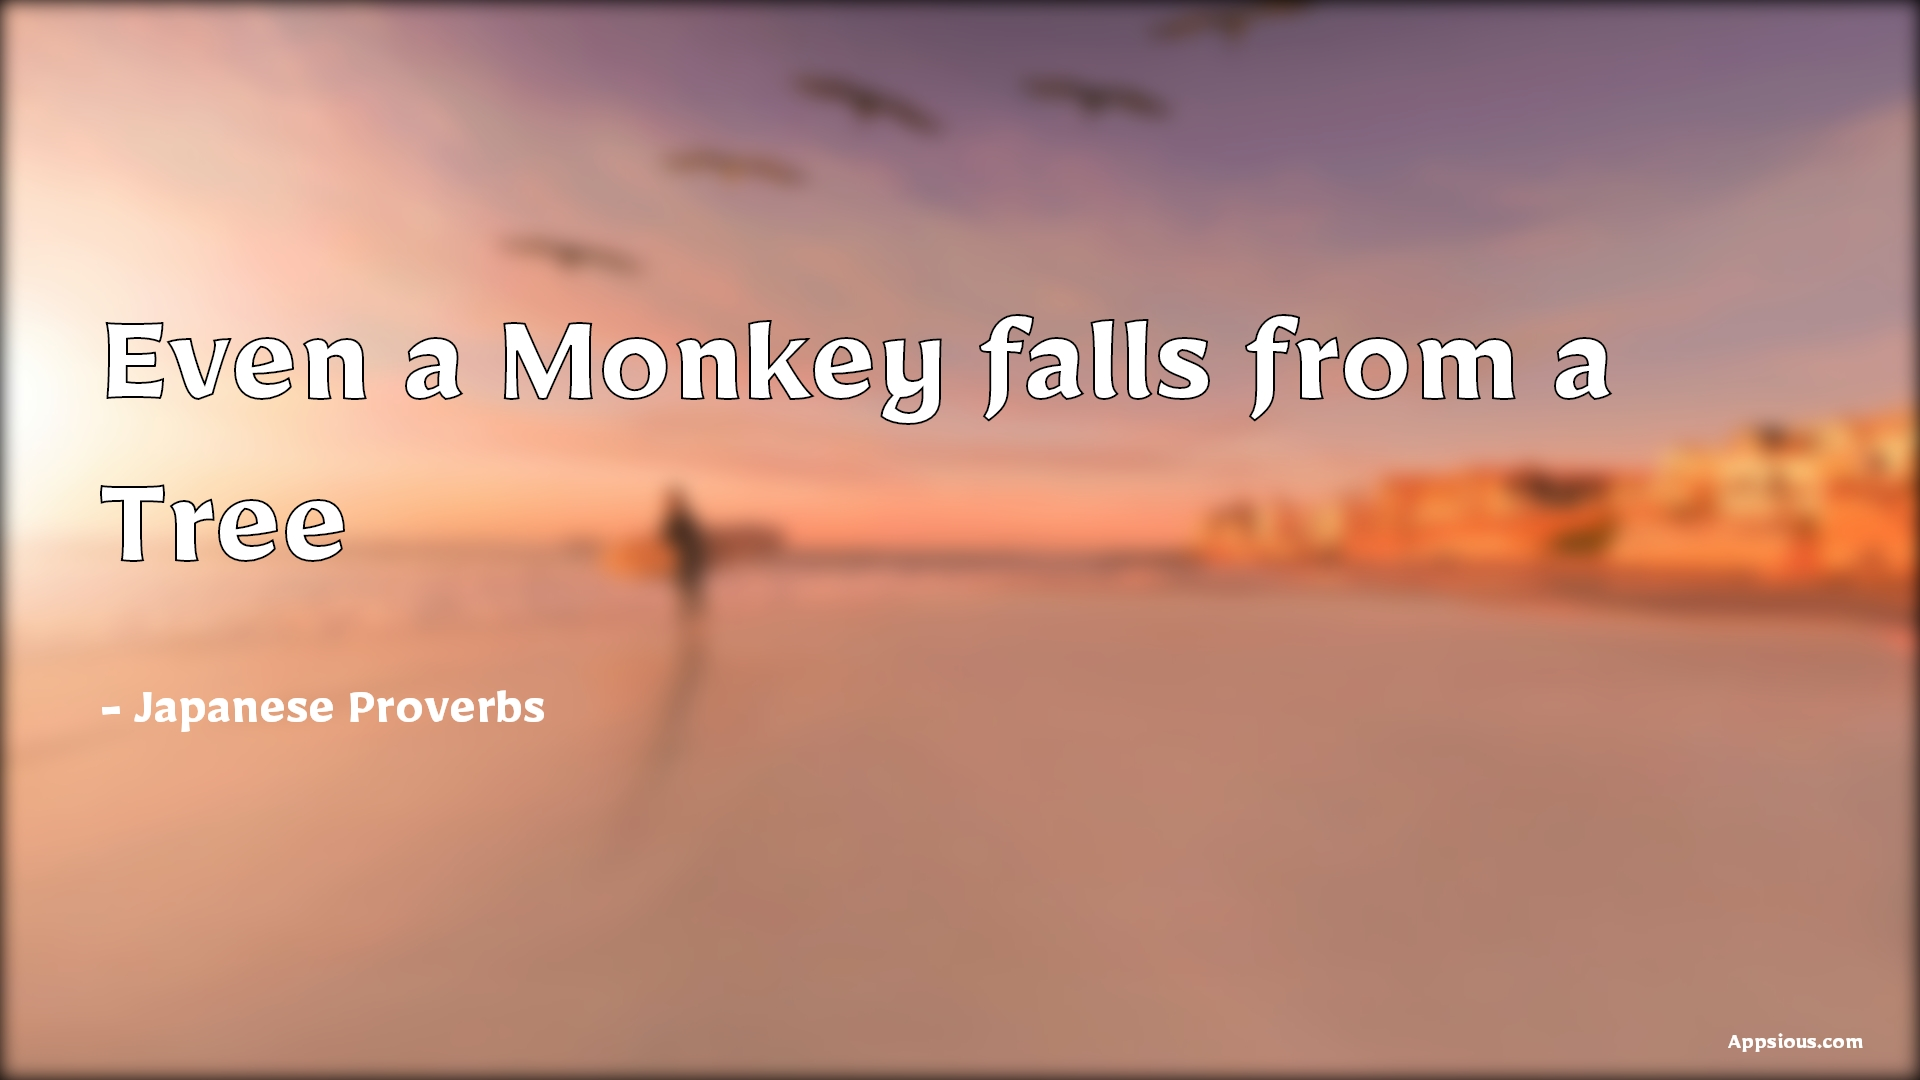 Even a Monkey falls from a Tree